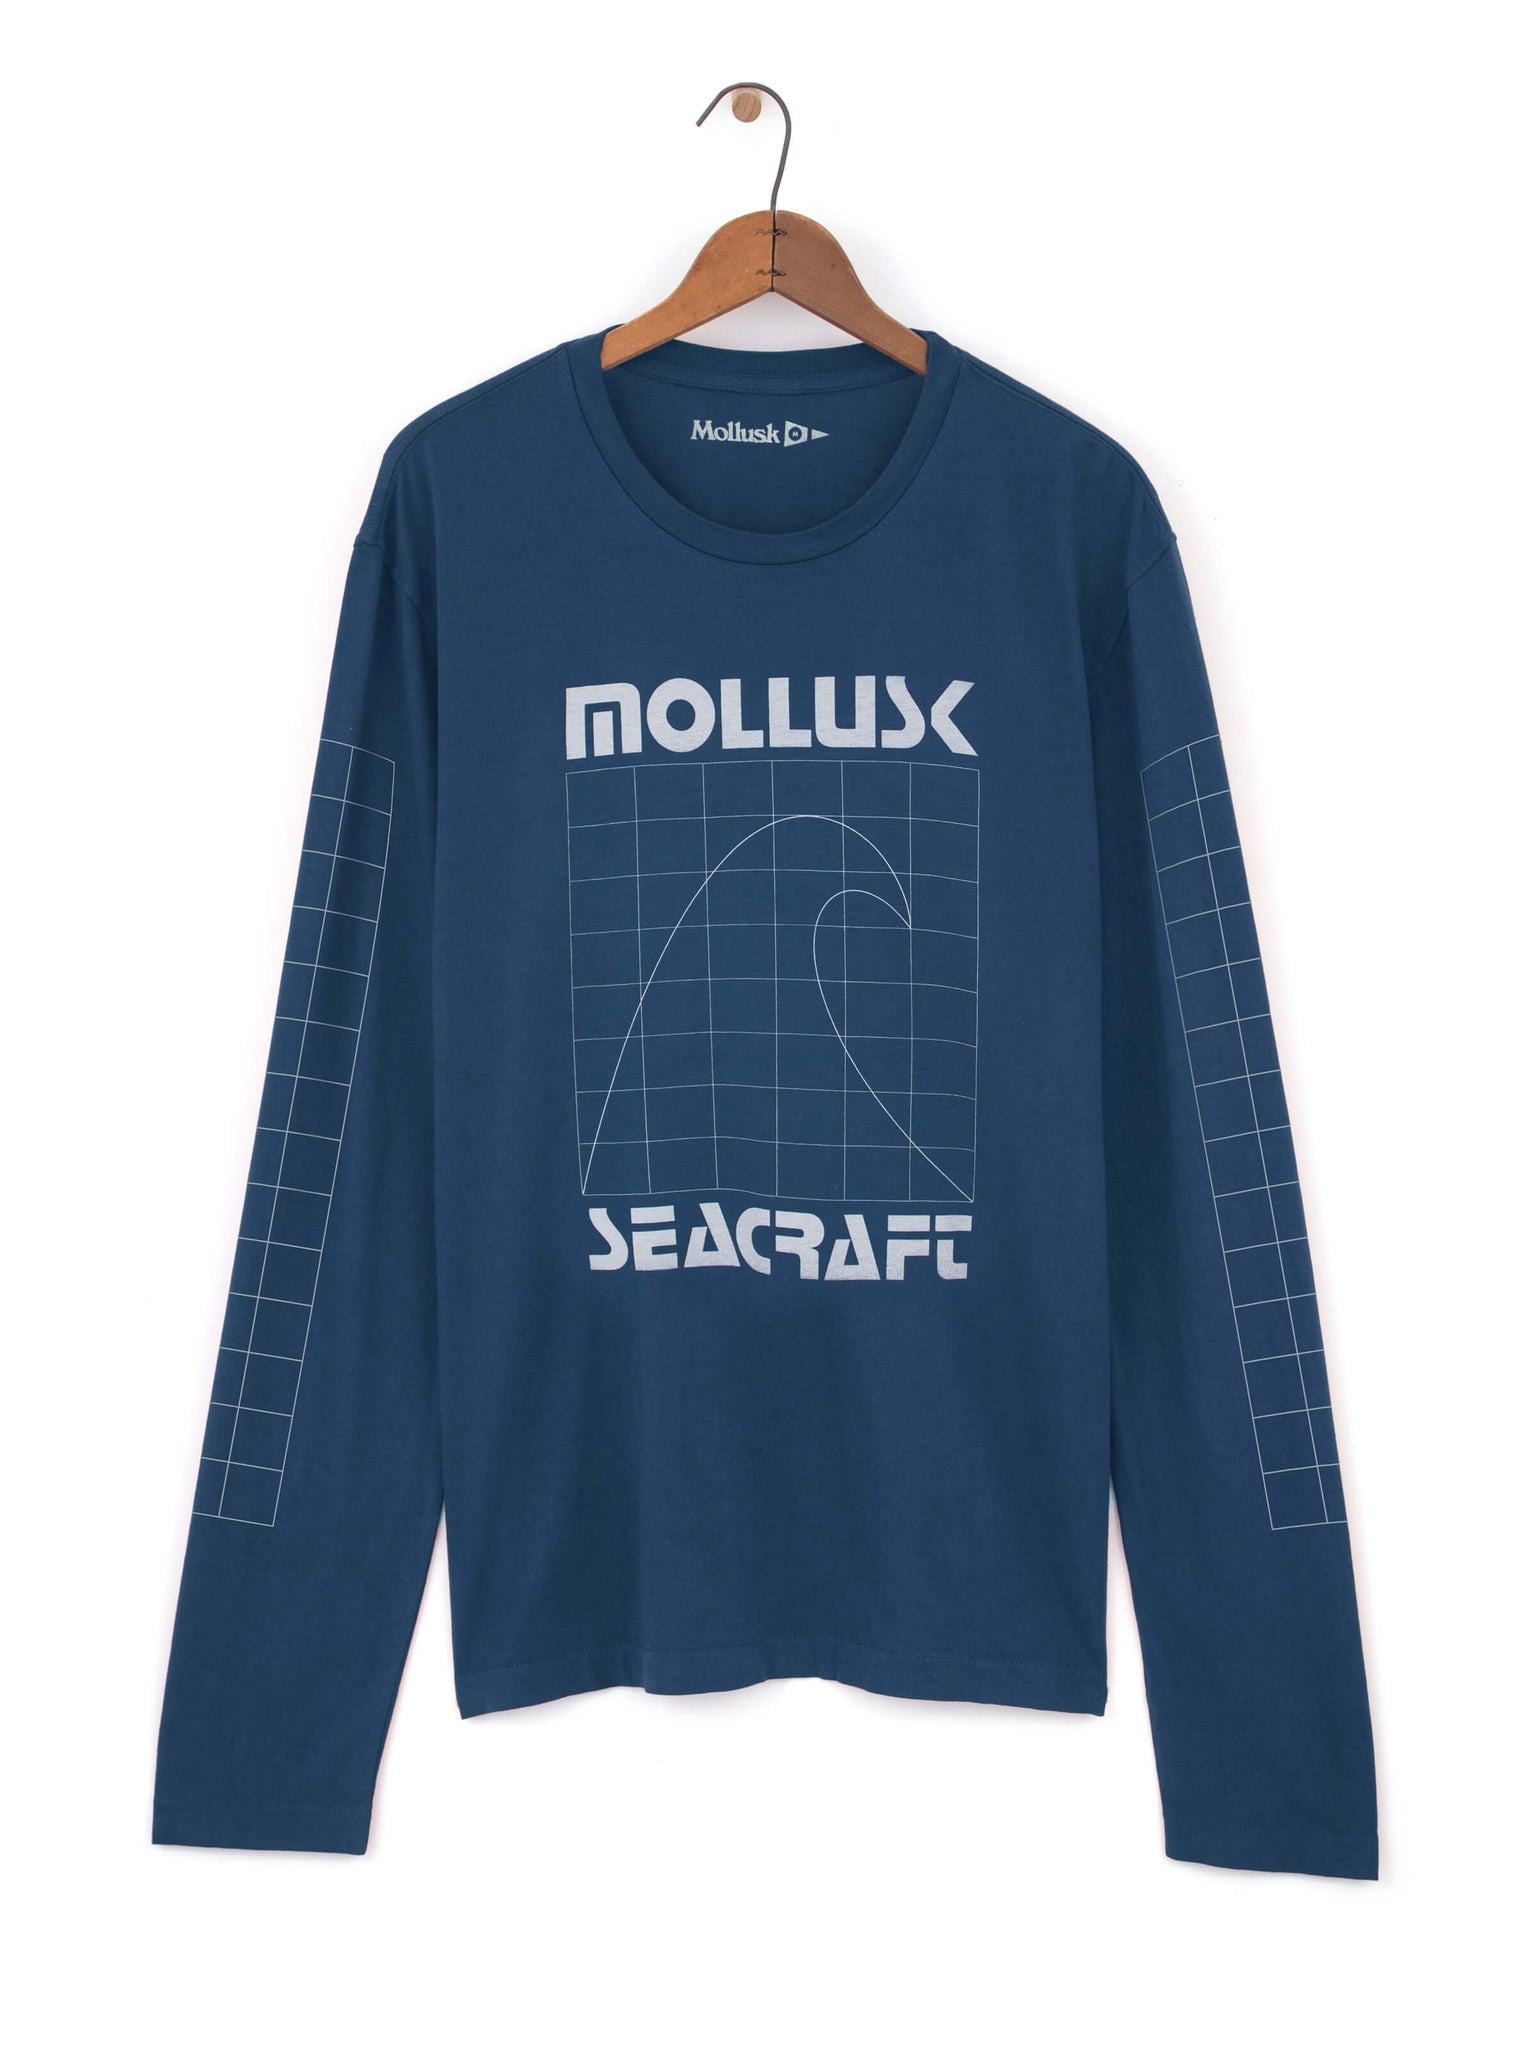 Mollusk Seacraft Long Sleeve